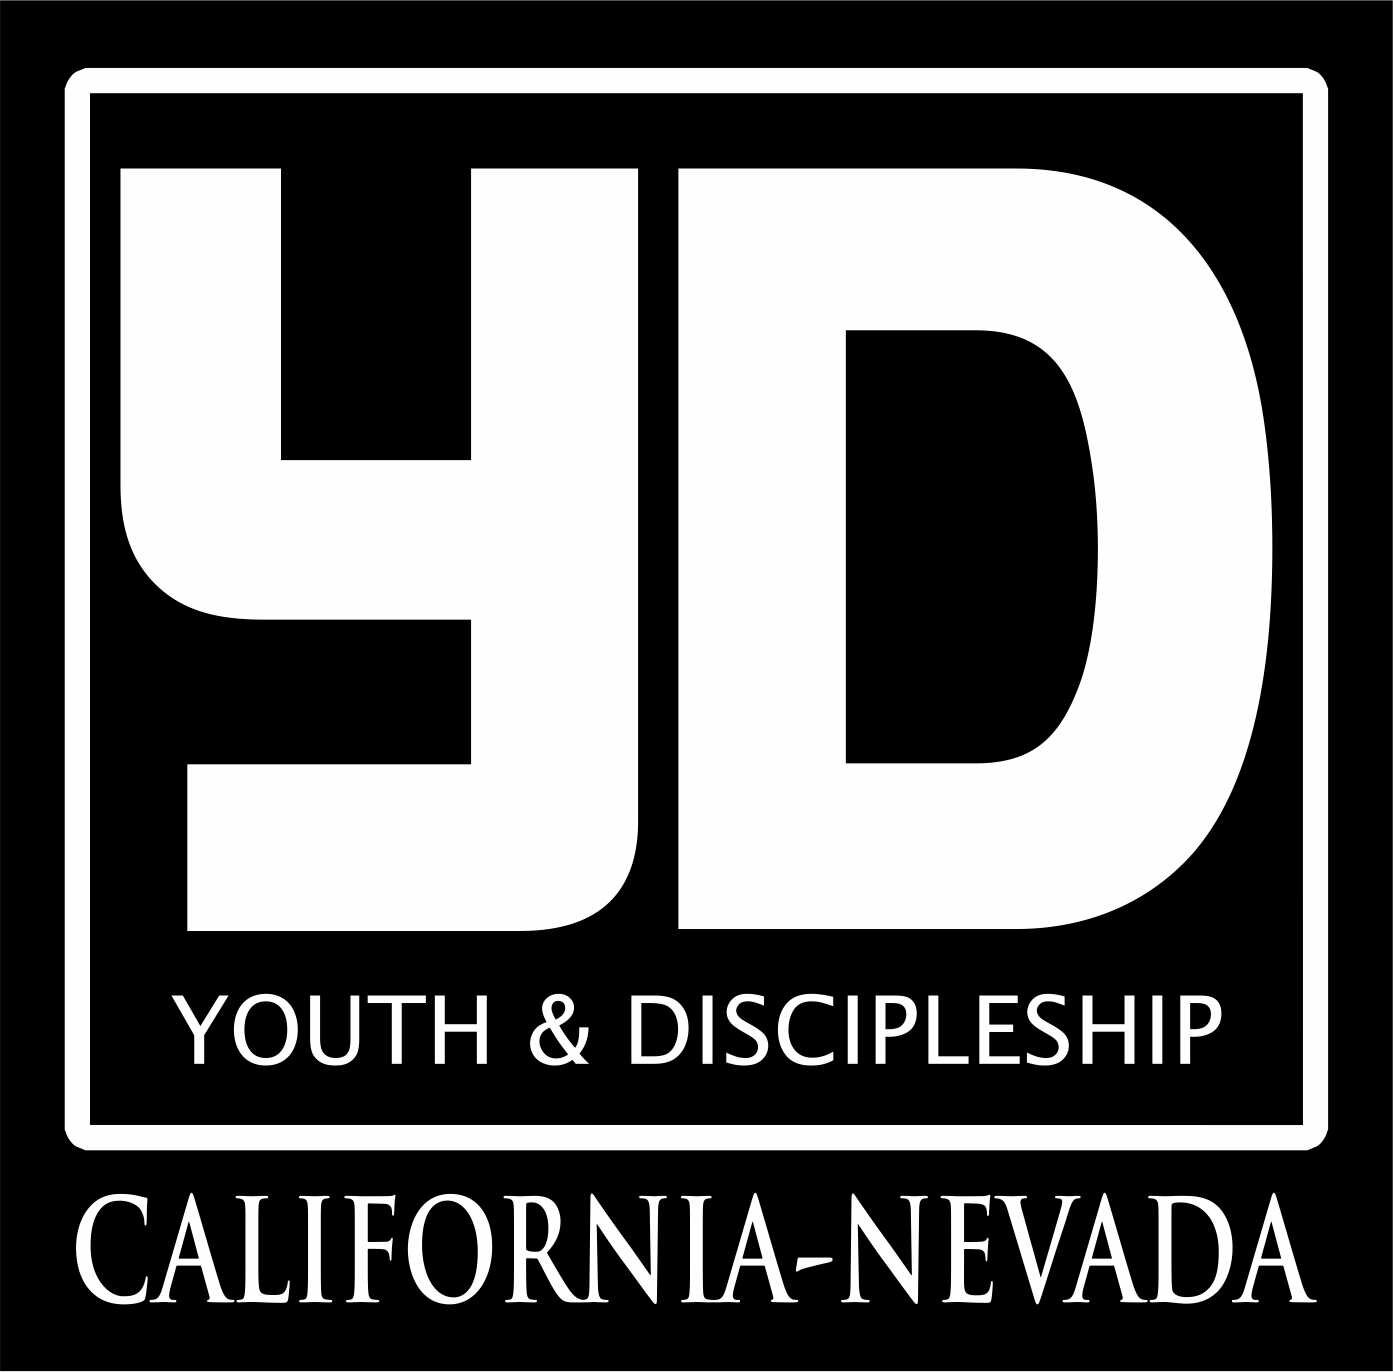 California/Nevada Church of God Youth dept.